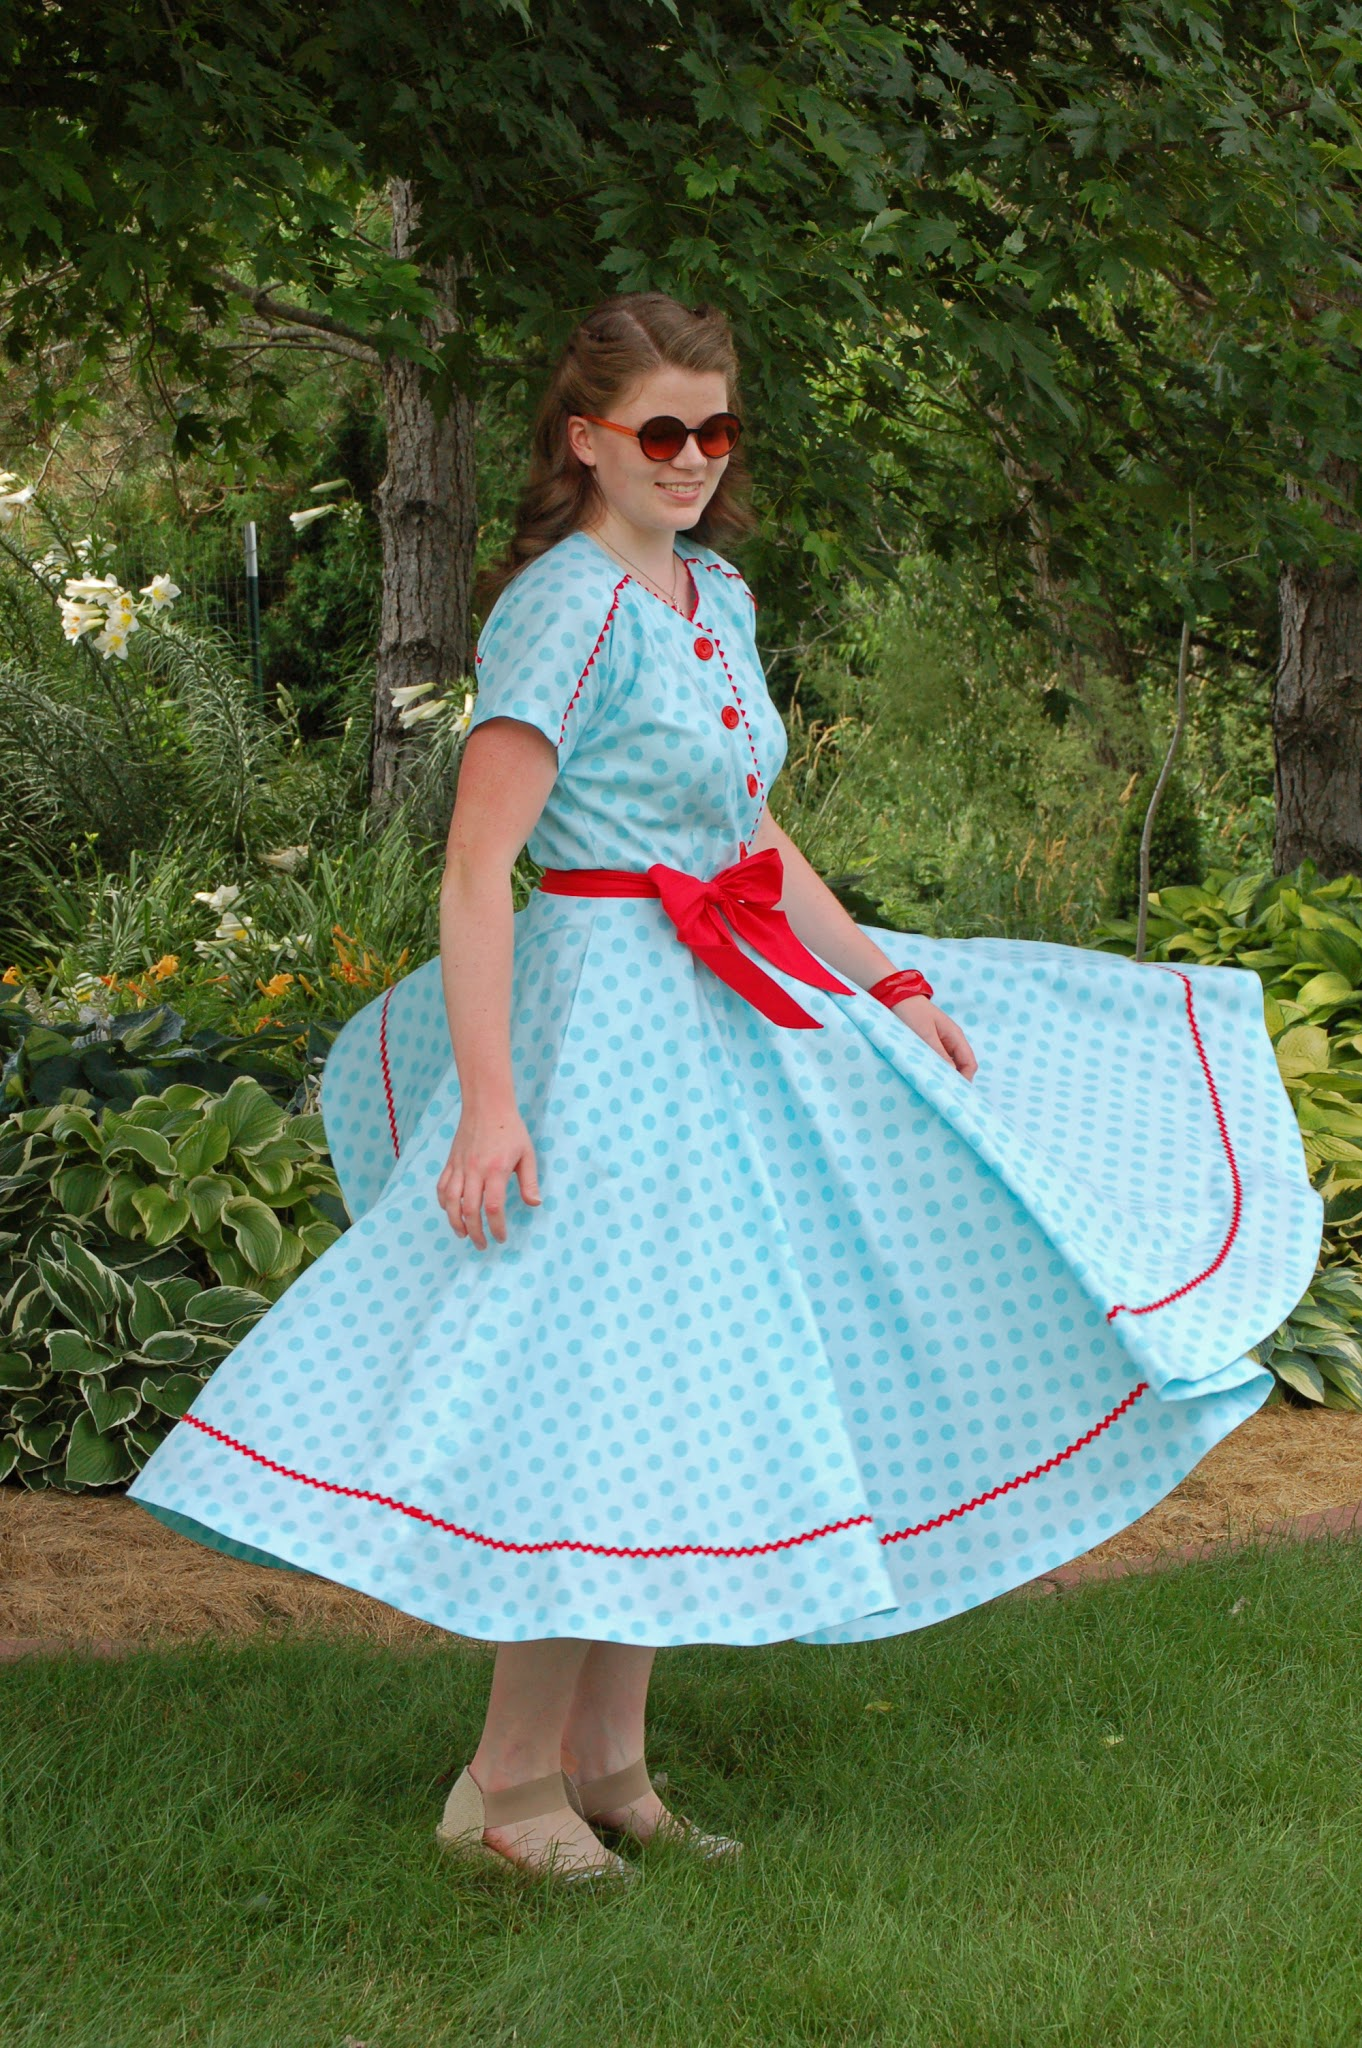 Dolly Creates: • 4th of July Polka Dot Dress •